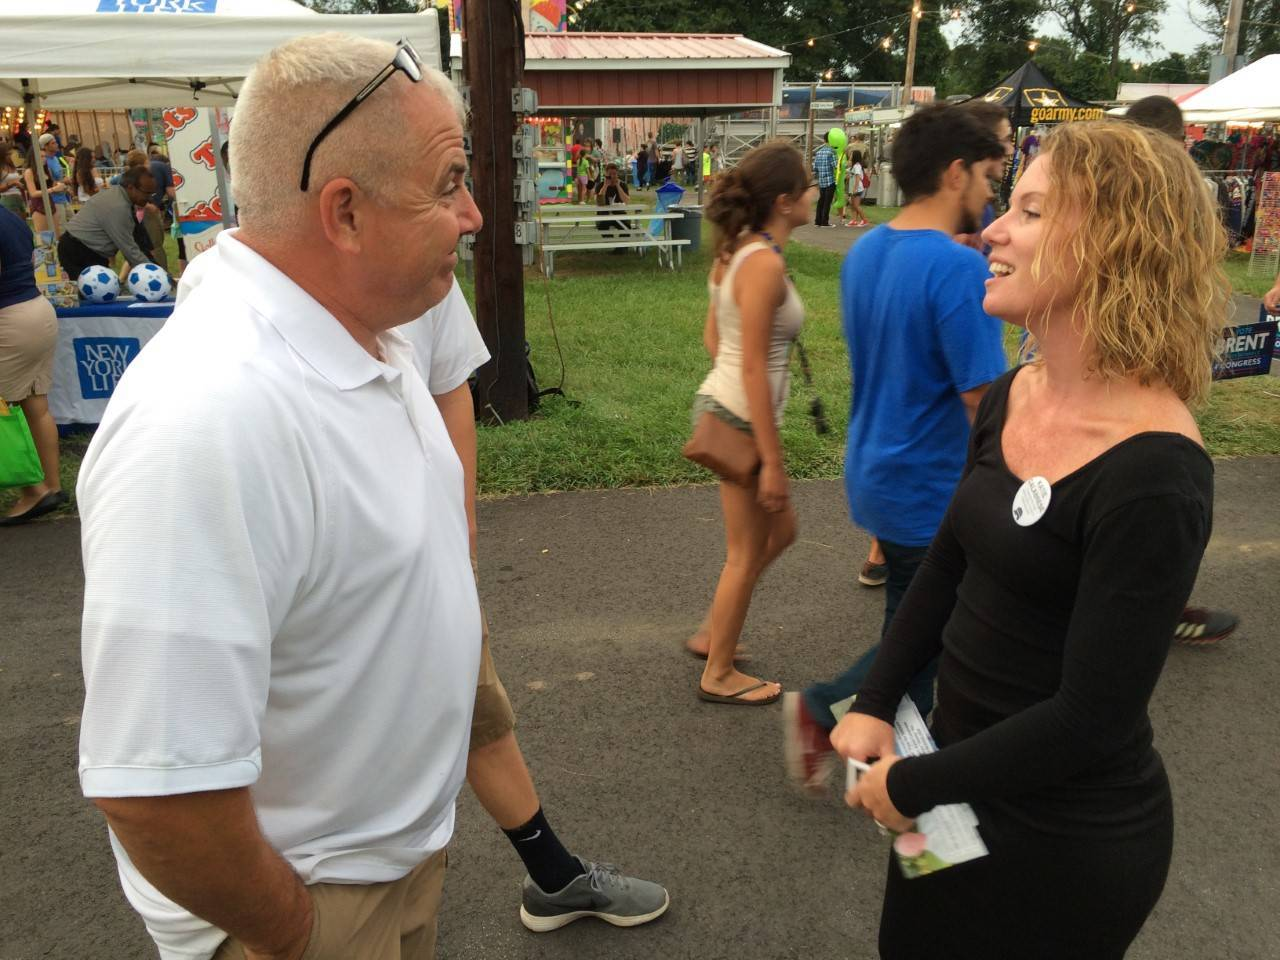 7b24e15d8998e8bc278d_Katie_talking_with_voter.jpg